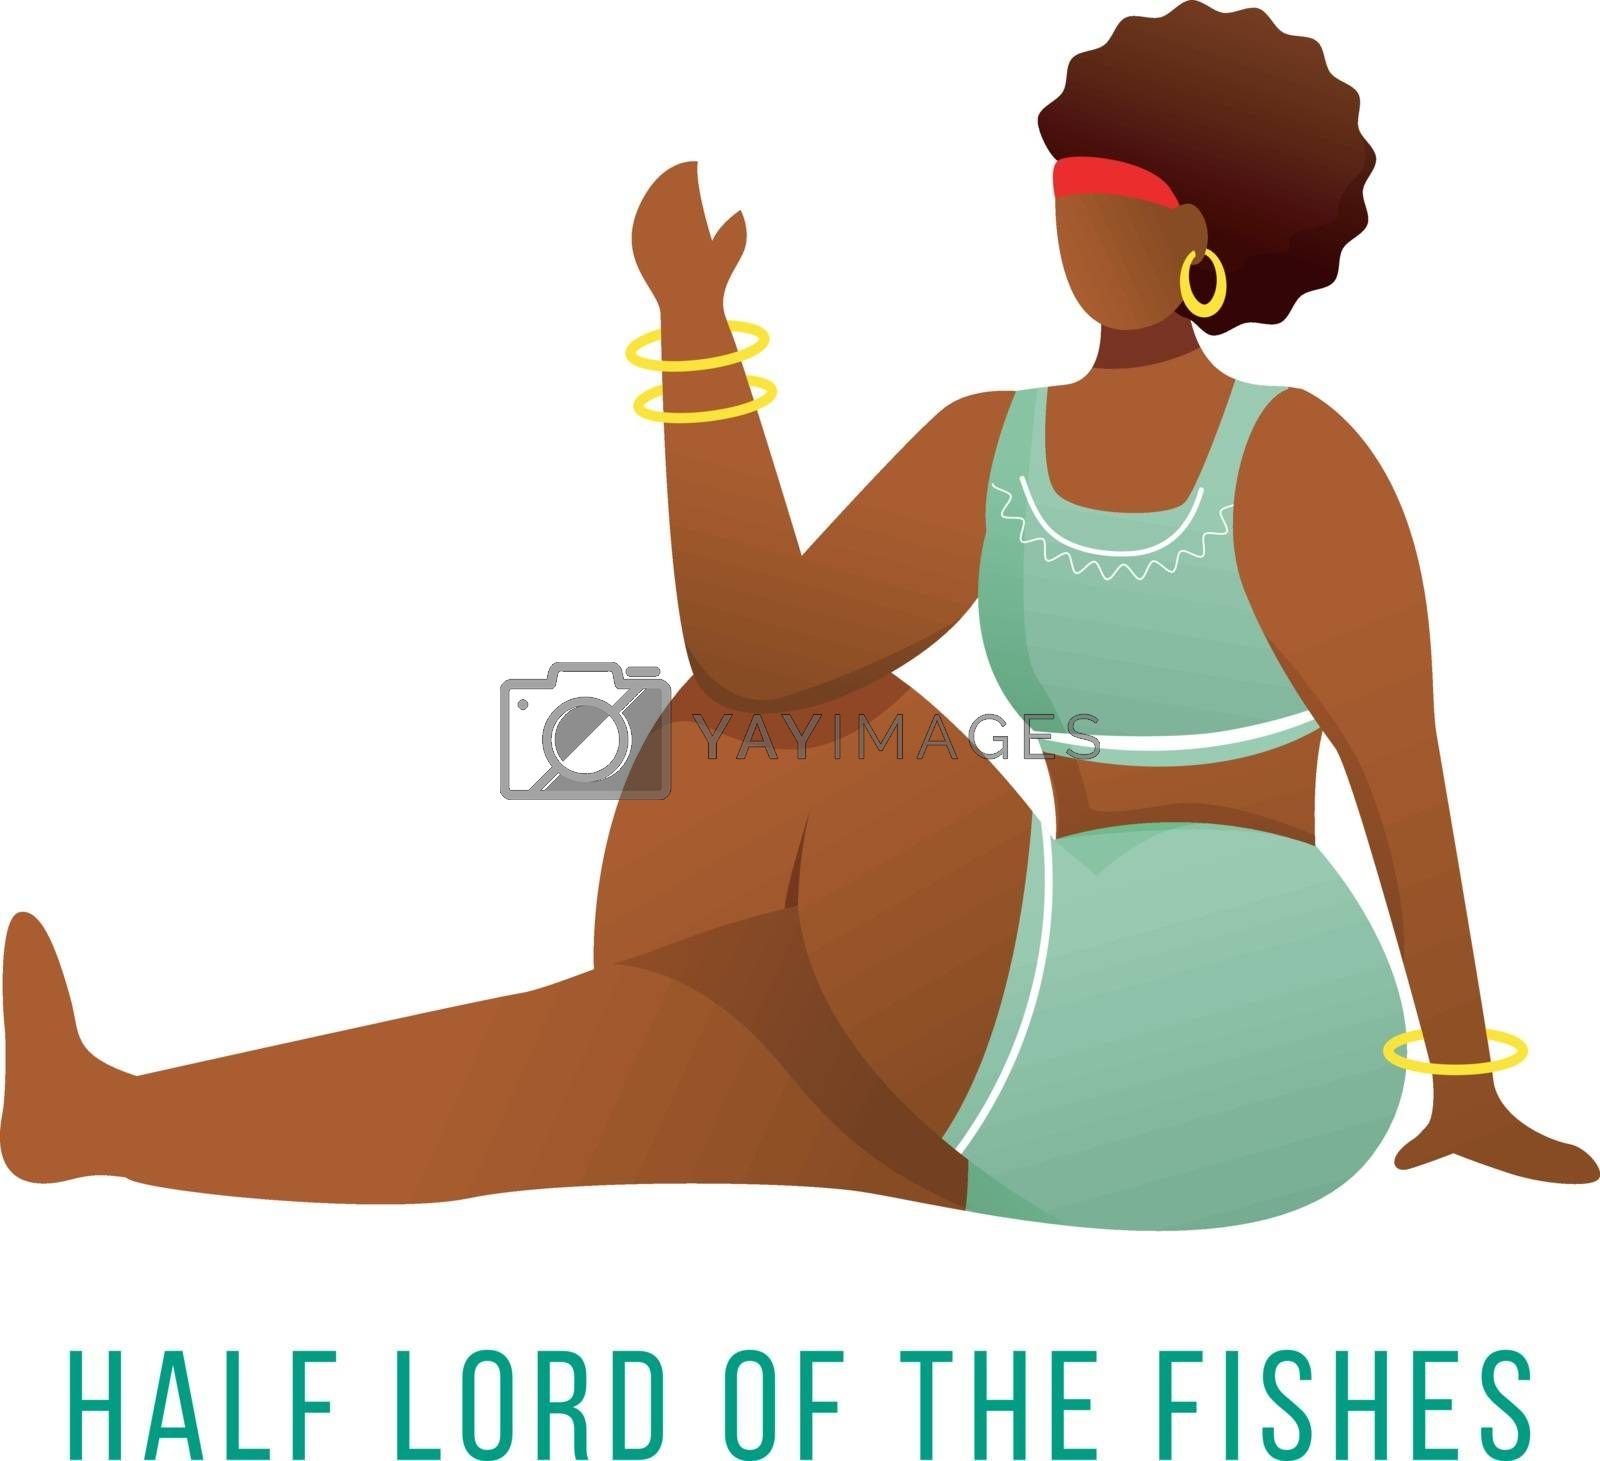 Half lord of fishes pose flat vector illustration. Ardha Matsyendrasana. African American, dark-skinned woman performing yoga posture. Workout, fitness. Isolated cartoon character on white background